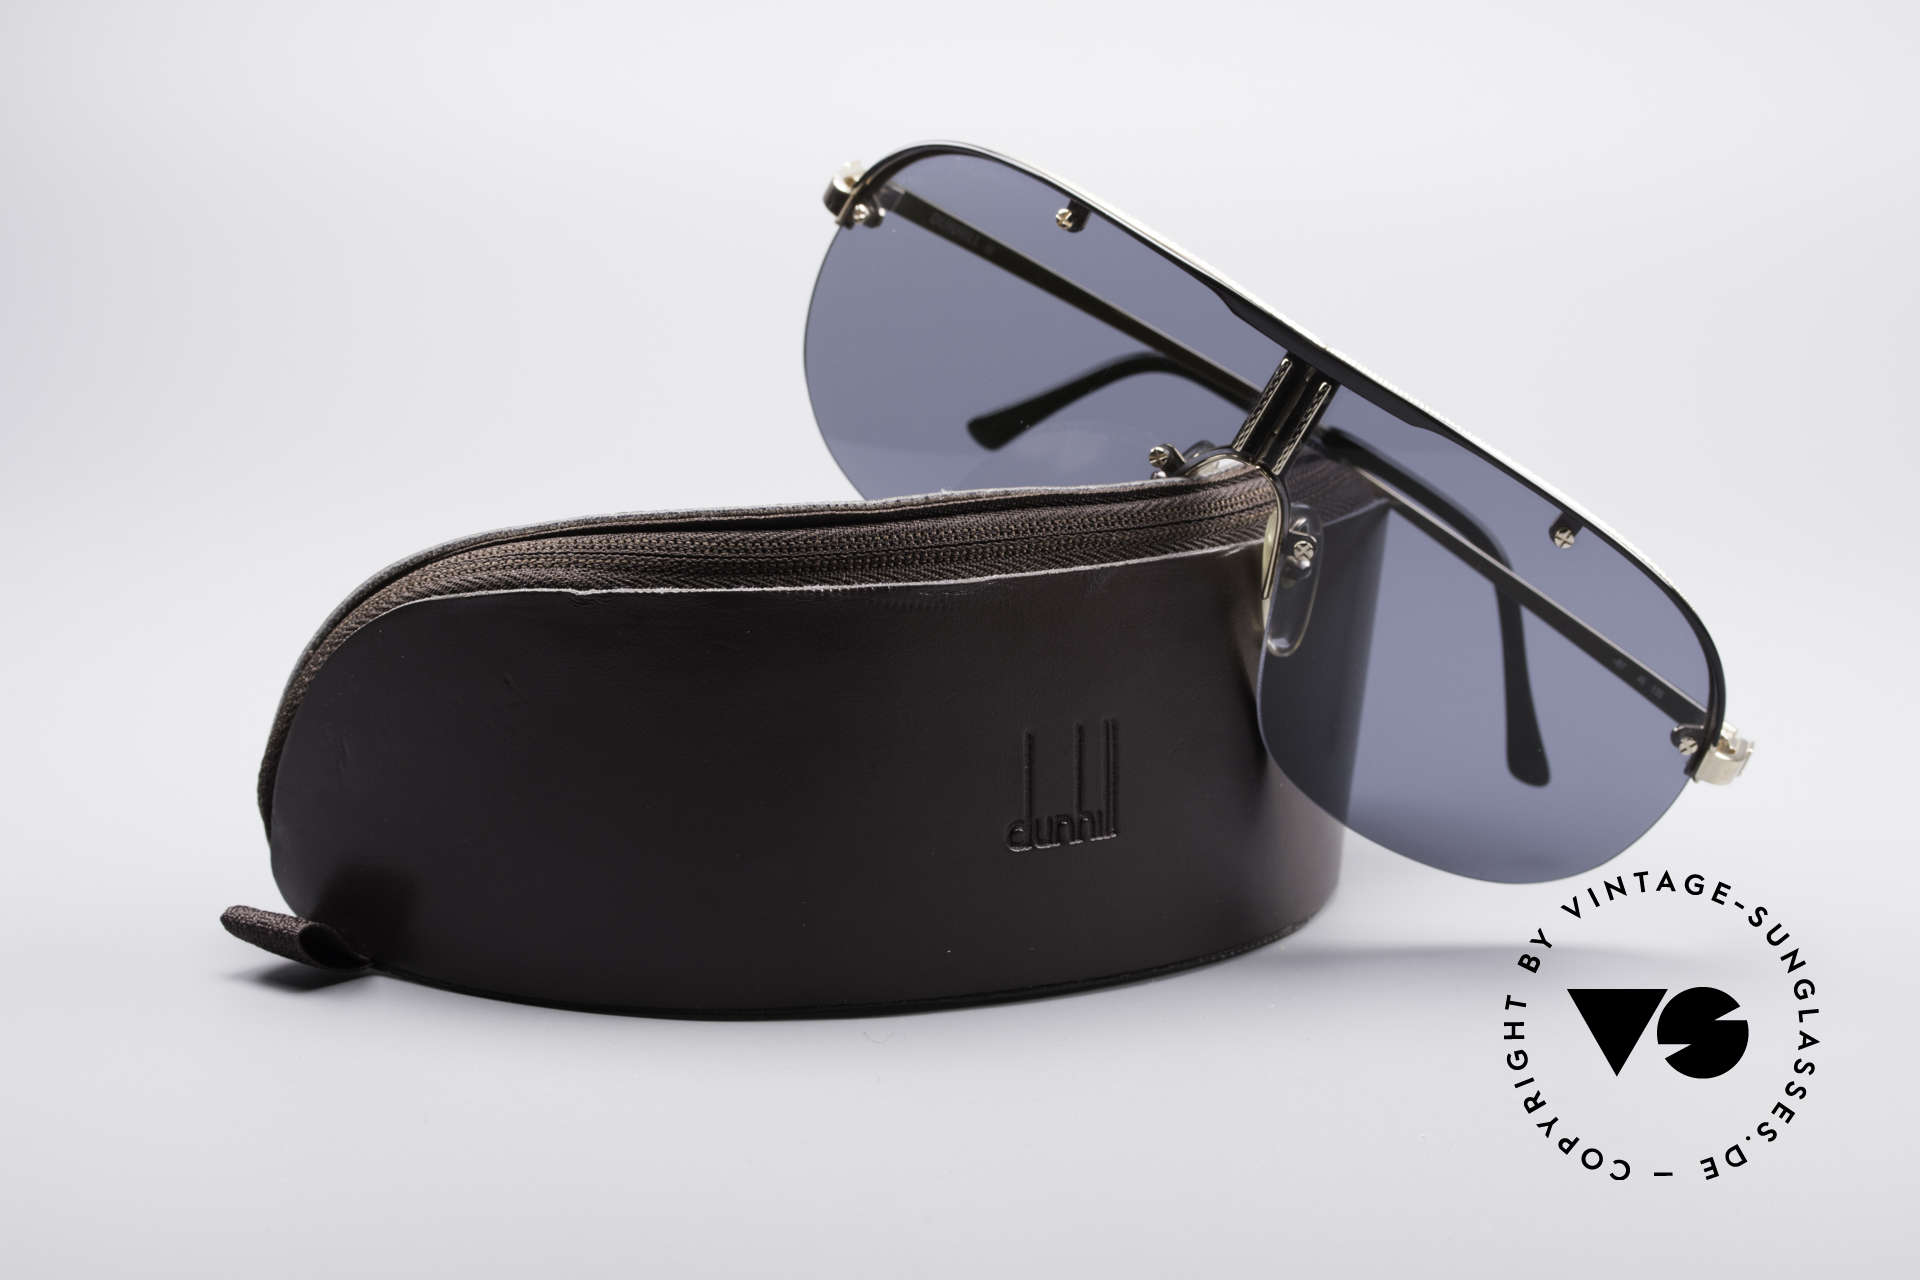 Dunhill 6102 90's Men's Shades, NO retro shades, but an authentic 29 years old original, Made for Men